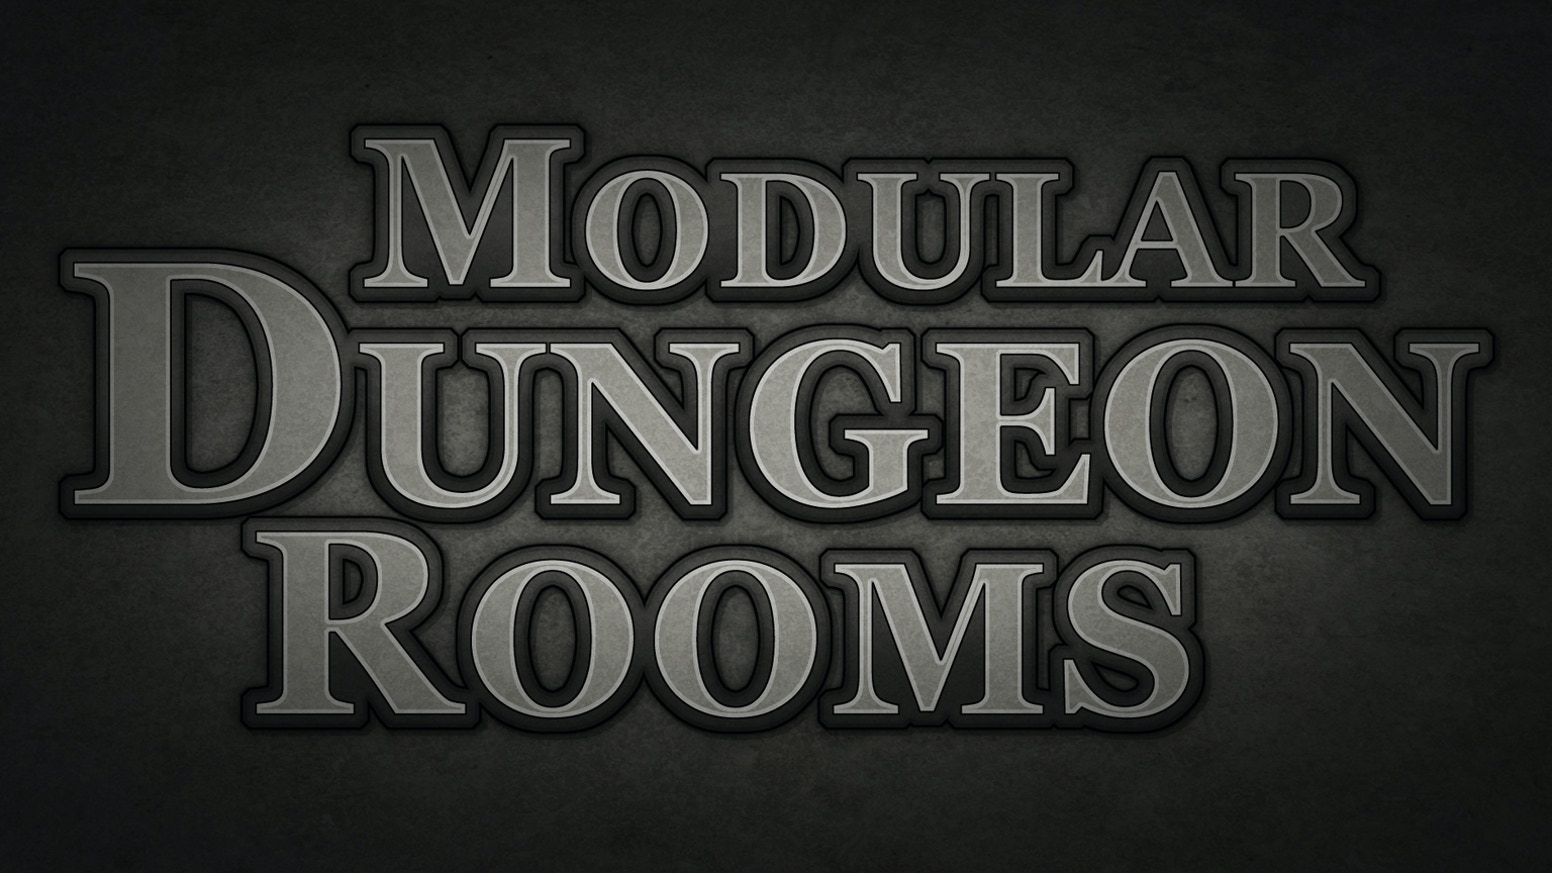 The Modular Dungeon Rooms are new kinds of accessories for tabletop role-playing games like 5th Edition, Pathfinder or other RPGs.